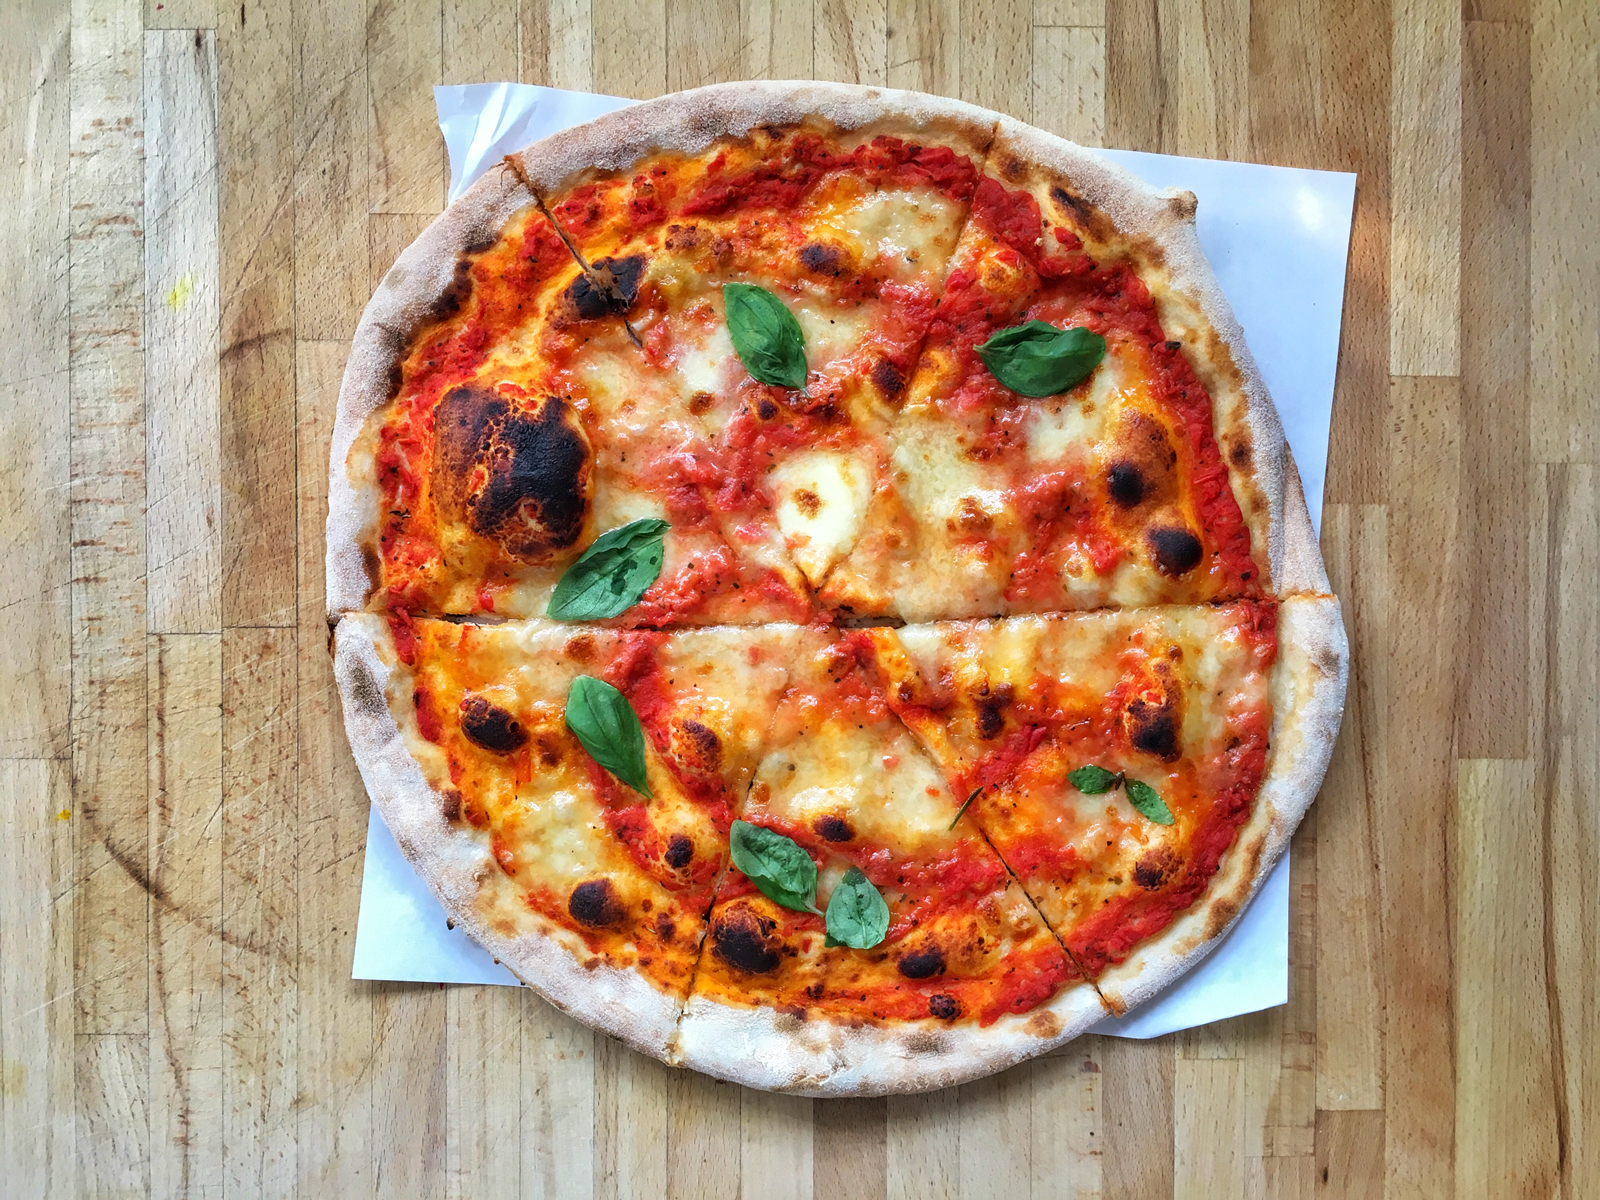 This Oven Company Will Pay You Up to $1,000 Per Day to Taste Pizza